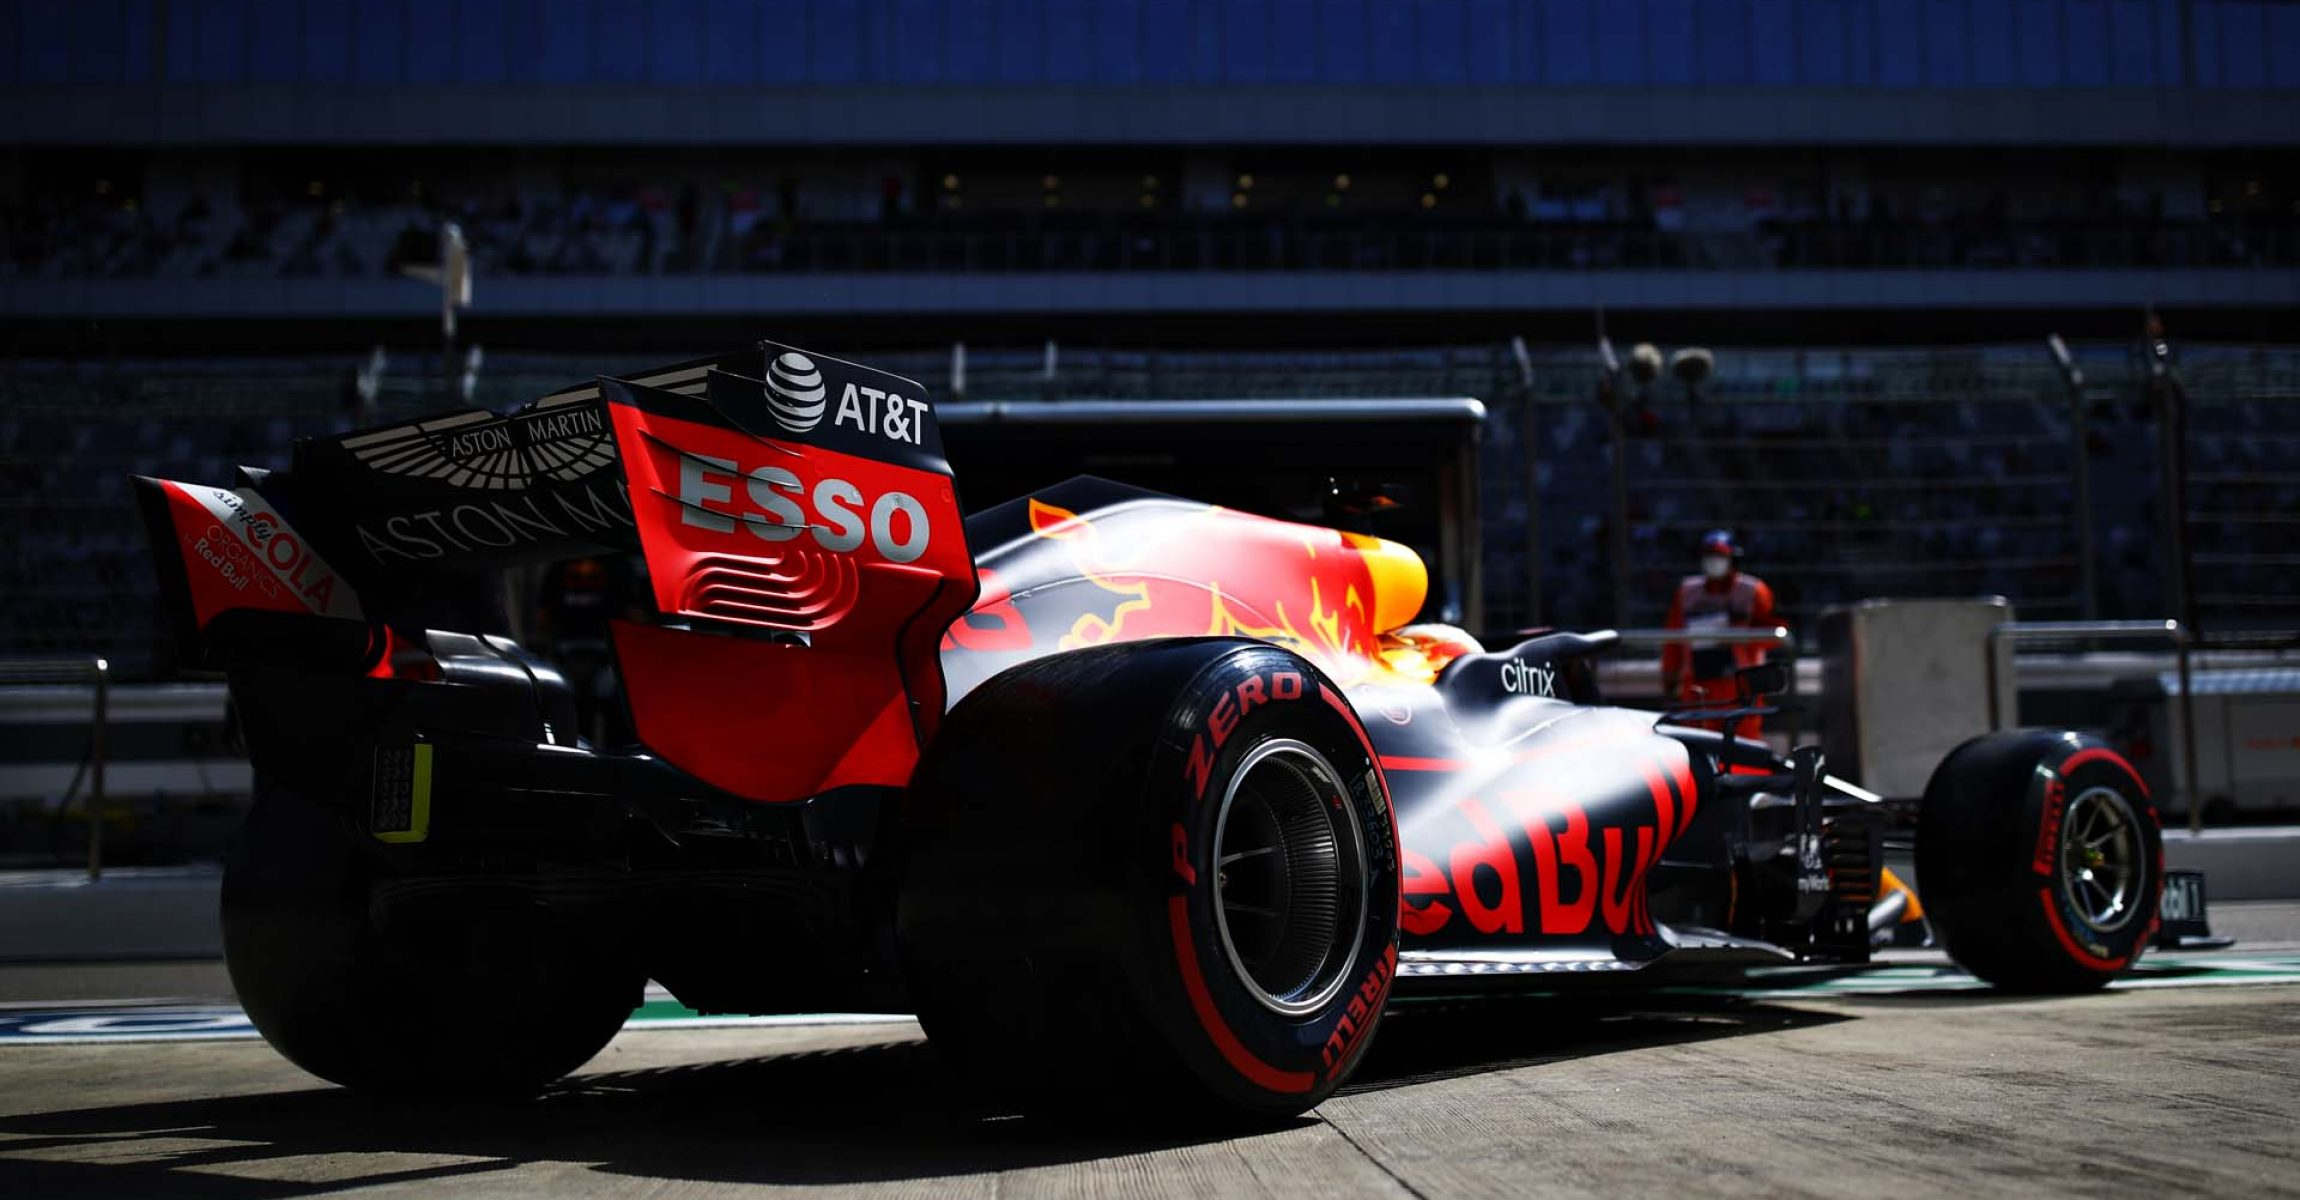 SOCHI, RUSSIA - SEPTEMBER 25: Max Verstappen of the Netherlands driving the (33) Aston Martin Red Bull Racing RB16 leaves the garage during practice ahead of the F1 Grand Prix of Russia at Sochi Autodrom on September 25, 2020 in Sochi, Russia. (Photo by Mark Thompson/Getty Images)